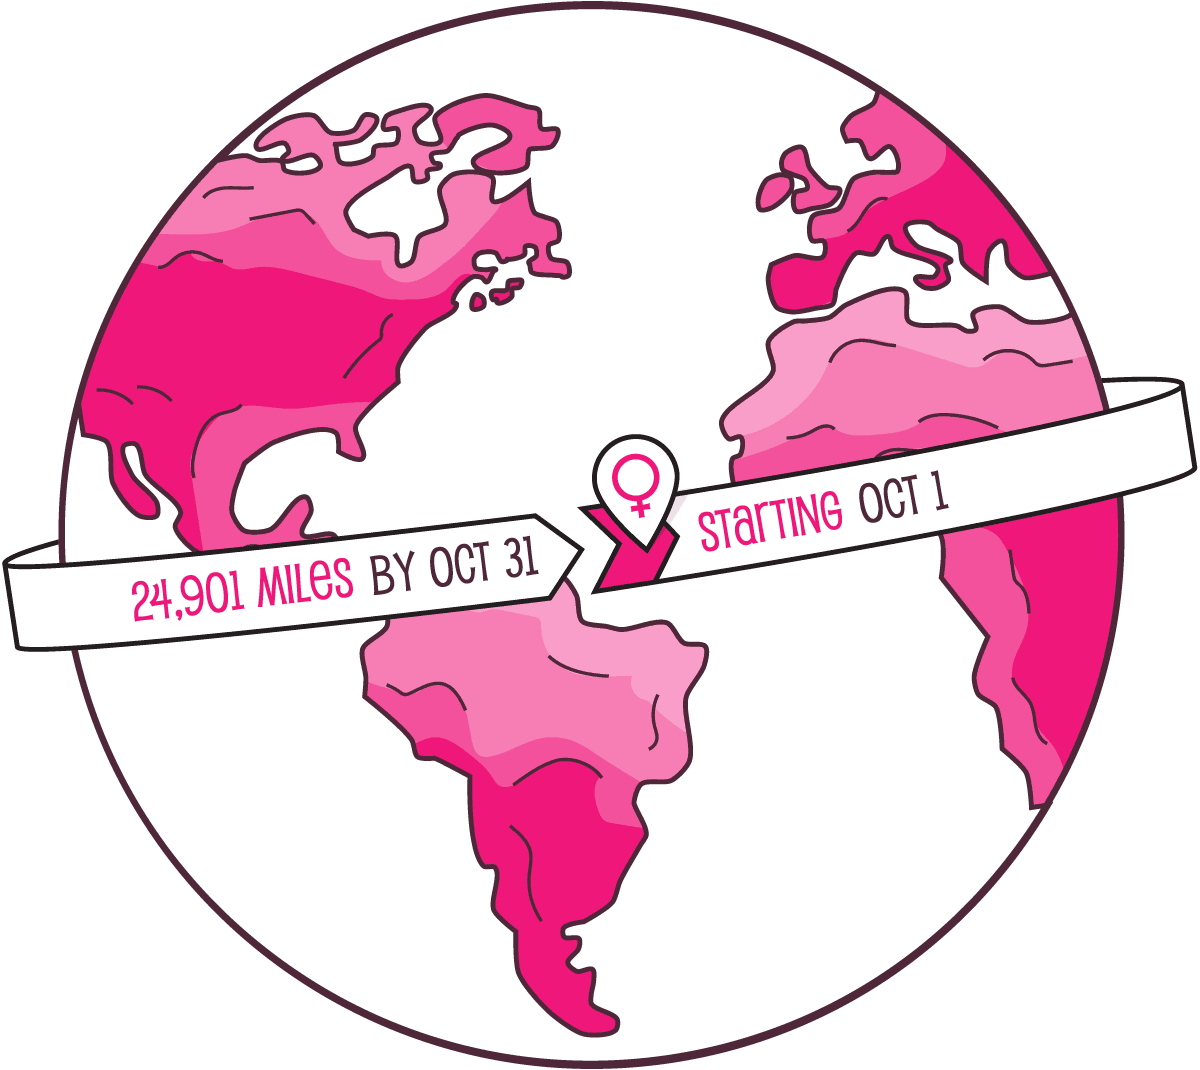 This October, thousands of women will join in a one of a kind adventure to collectively and virtually run around the world to benefit charities that empower girls globally.